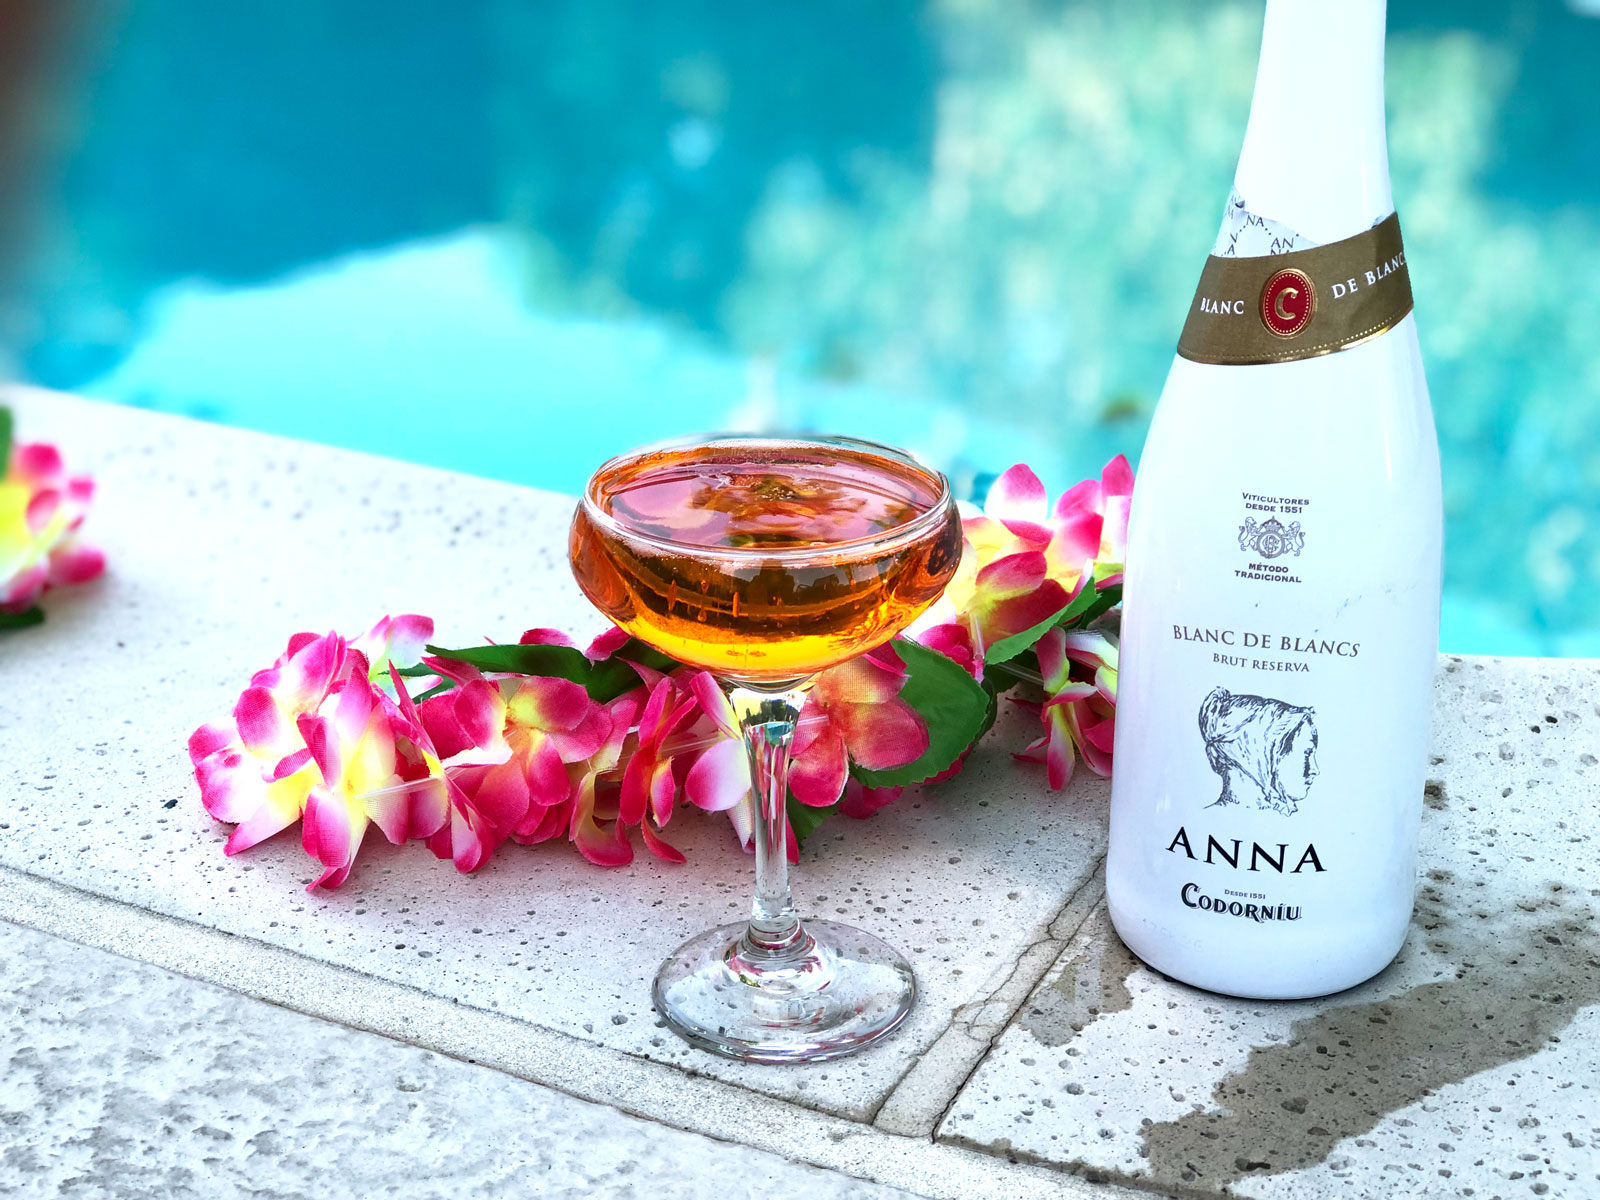 3 Simple Sparkling Cocktail Recipes for Your Poolside Drinking Pleasure